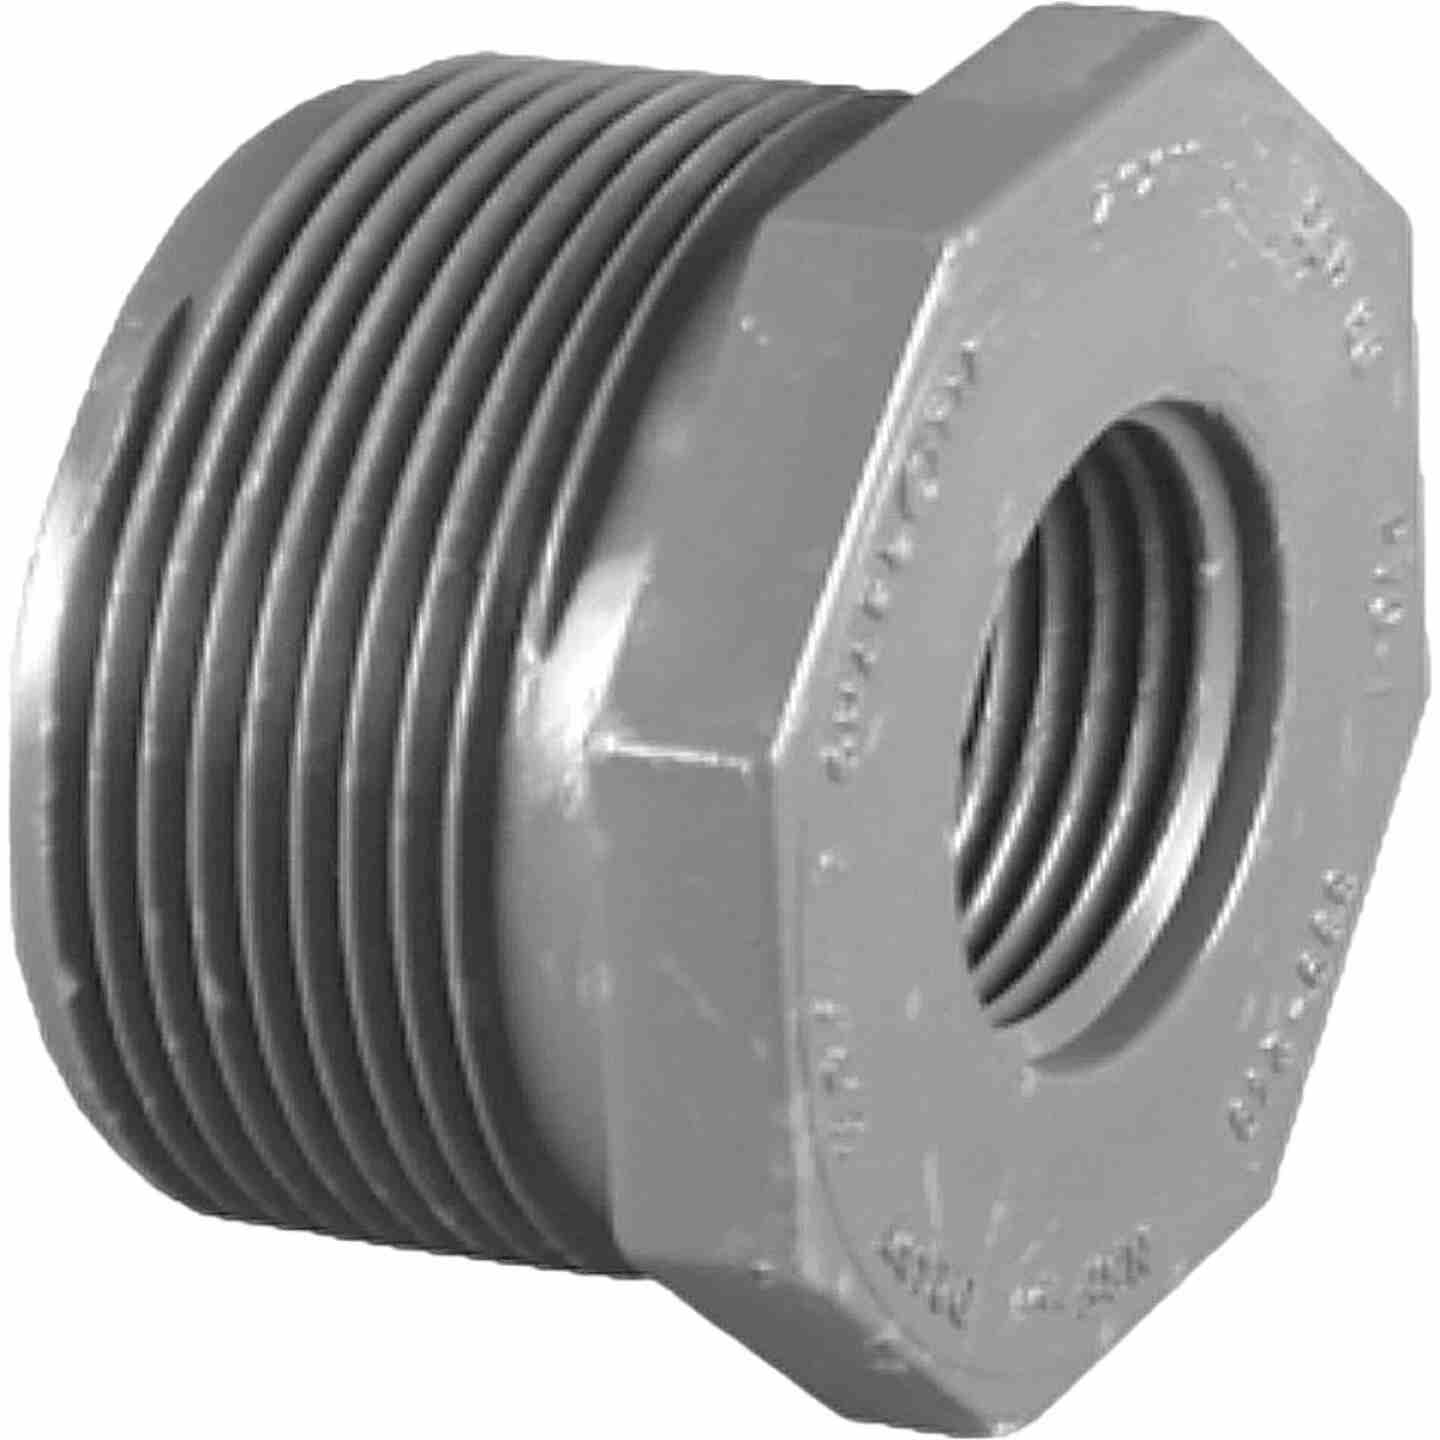 Charlotte Pipe 1-1/4 In. MPT x 3/4 In. FPT Schedule 80 Reducing PVC Bushing Image 1